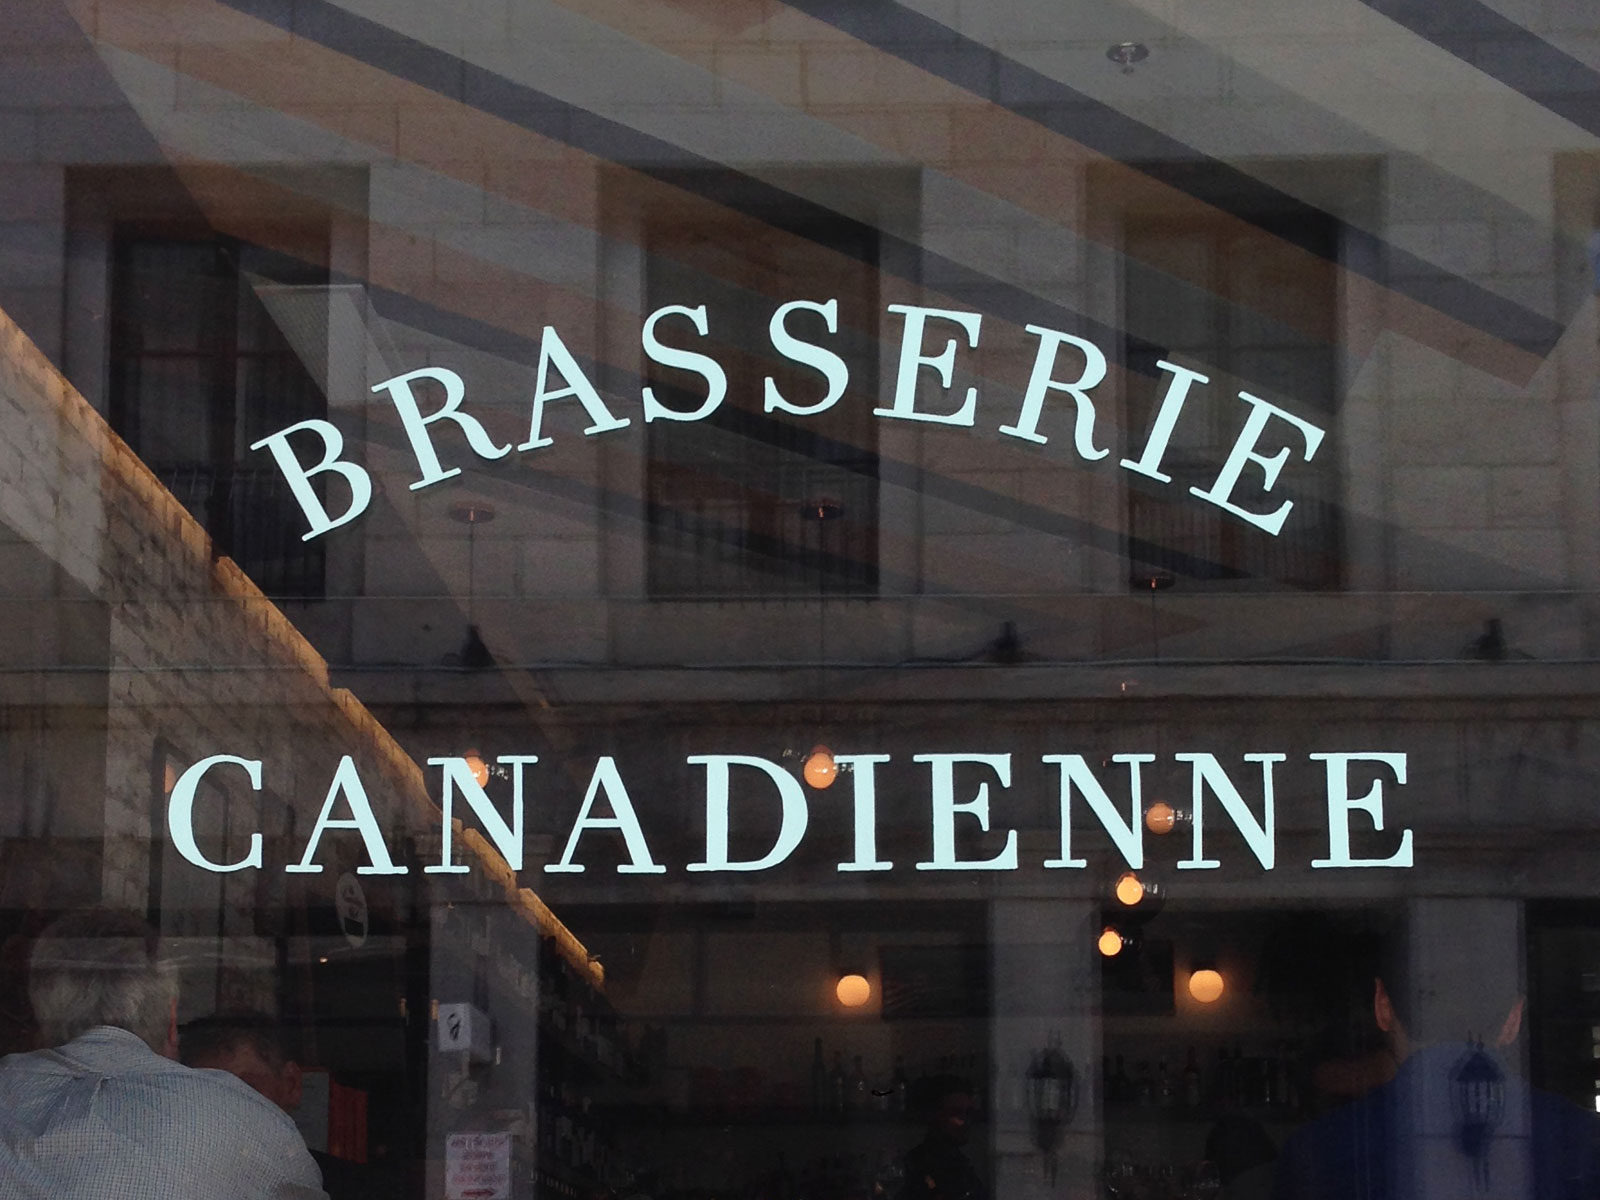 Brasserie Canadienne window